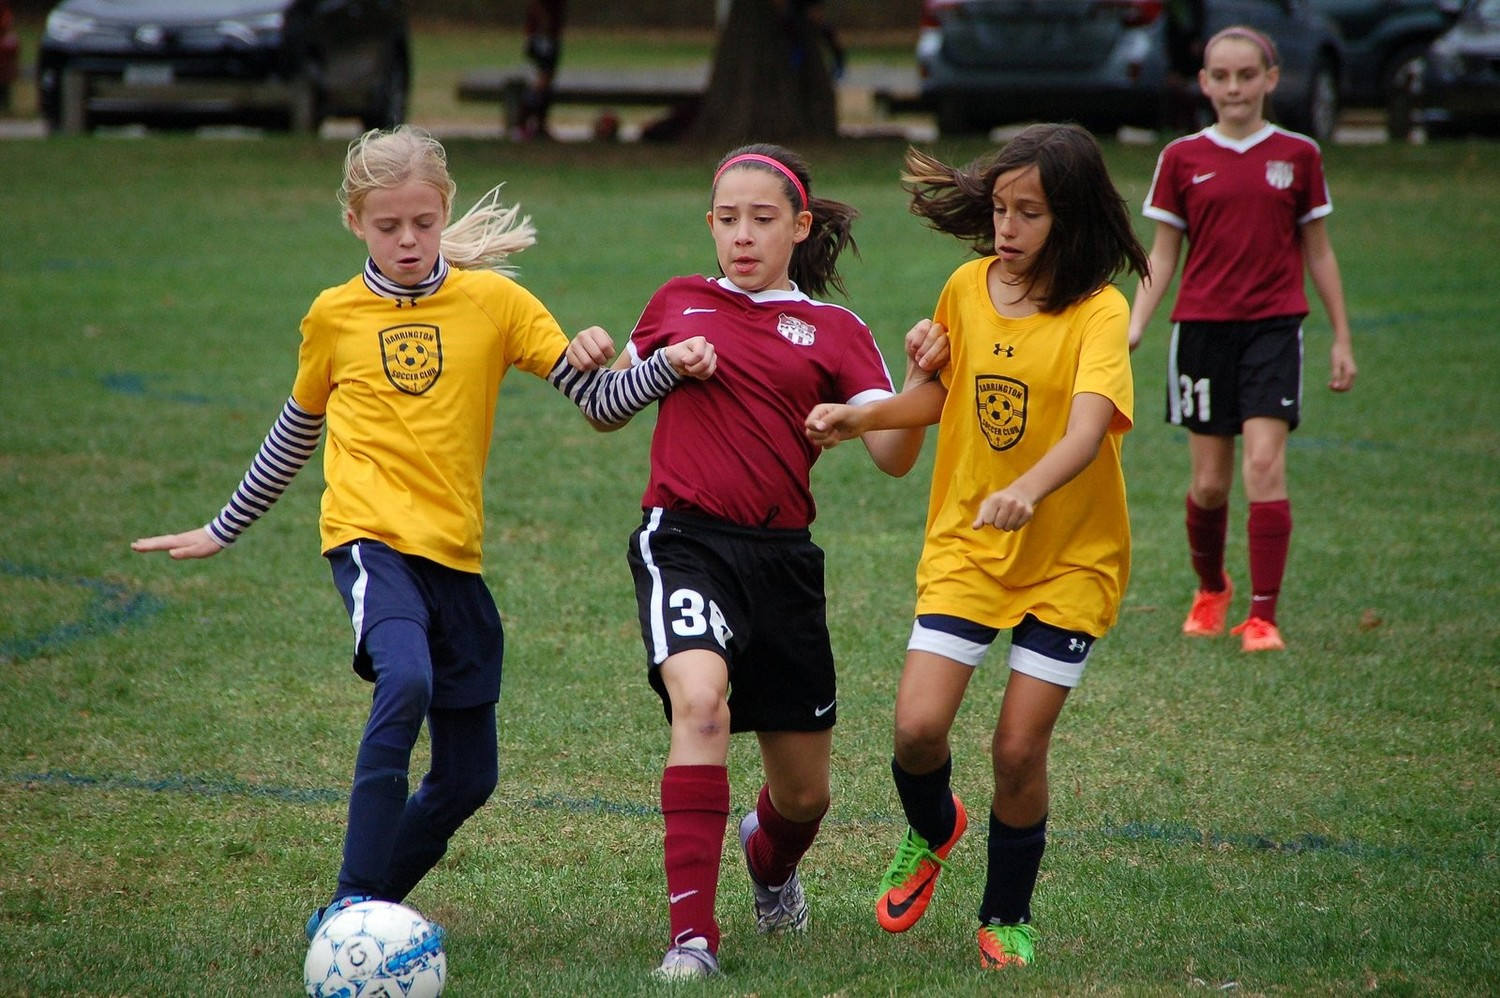 The action in the 37th annual Barrington Youth Soccer Association Invitational Tournament this past weekend was fast and furious. The competition was keen, and parents and fans were thoroughly entertained.